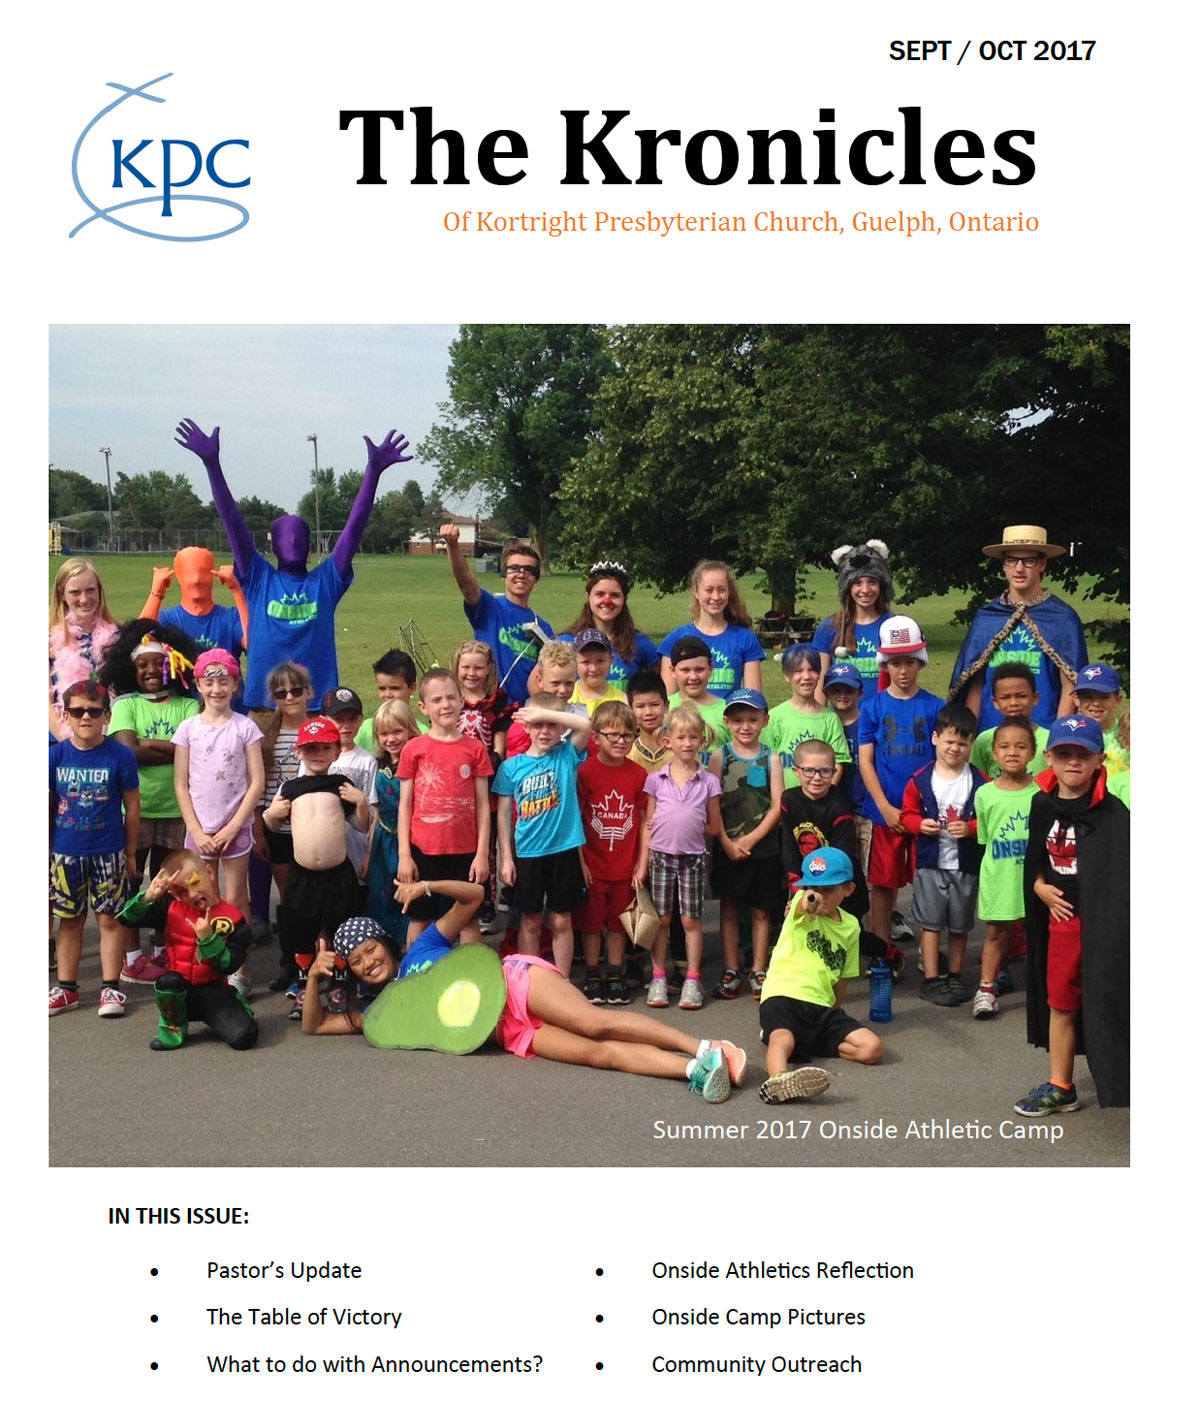 image of the front page of the Kortright Kronicles from September and October 2017